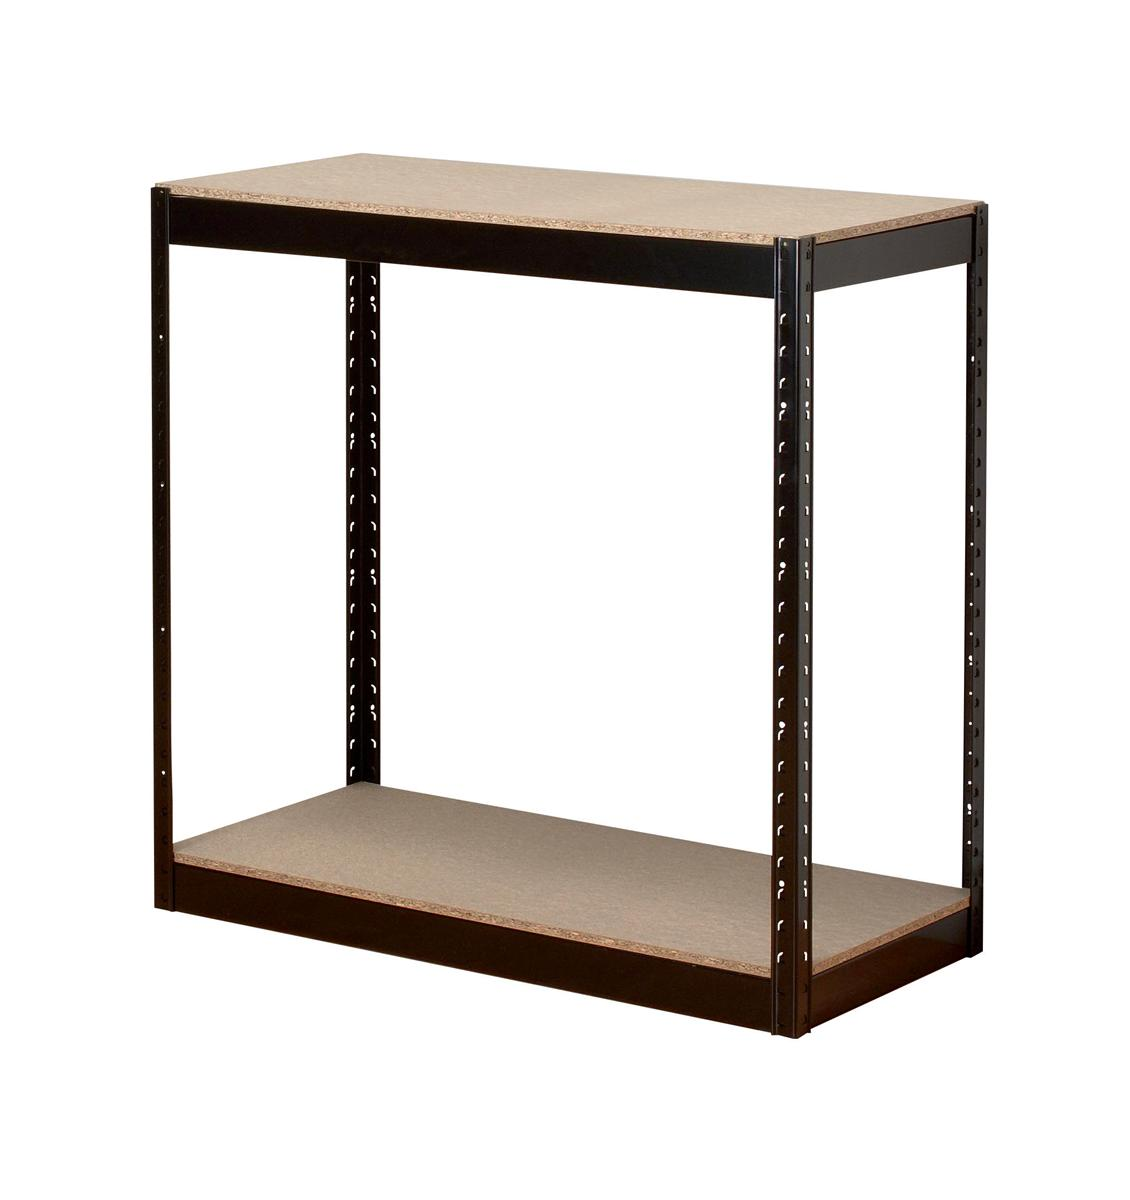 Image for Influx Storage Shelving Unit Heavy-duty Boltless 2 Shelves Capacity 2x 150kg W950xD450xH940mm Black